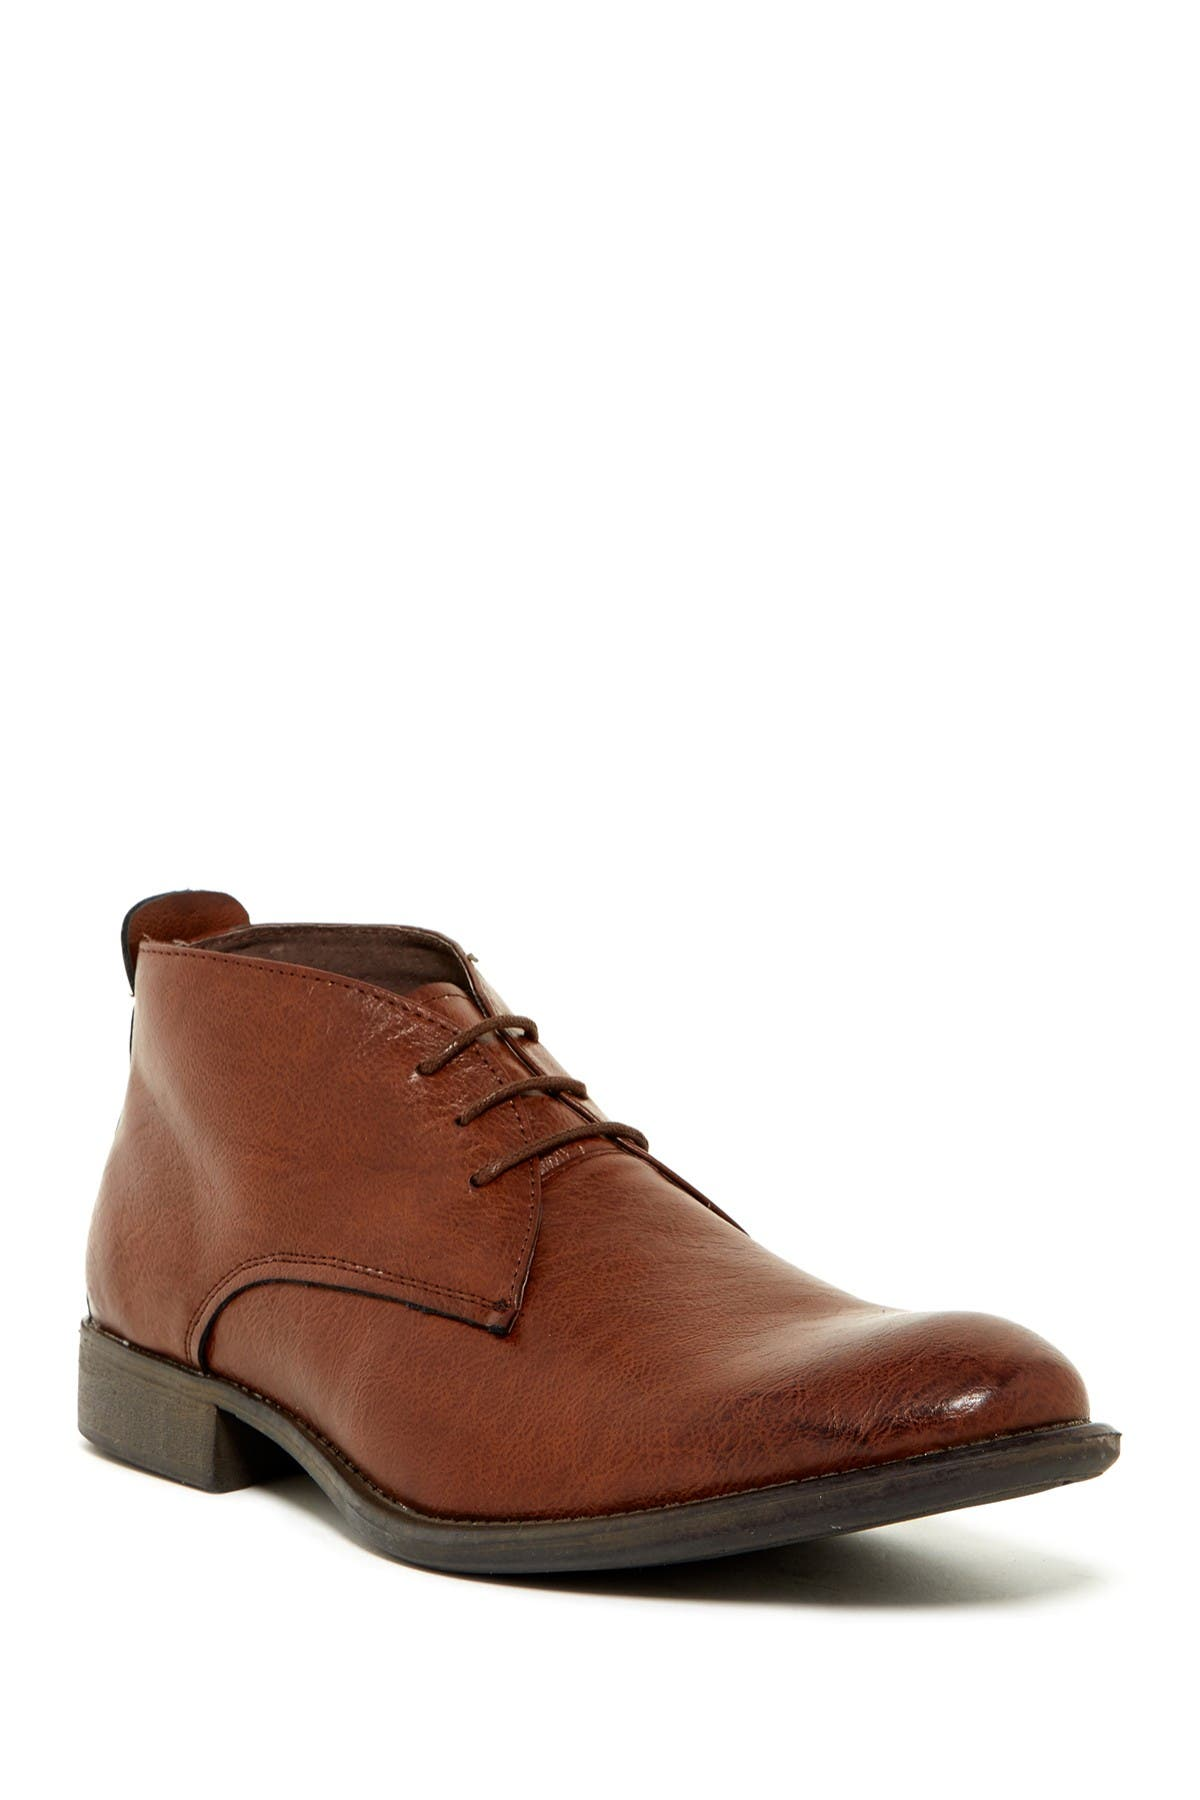 Image of Kenneth Cole Reaction Ap-Plaus Chukka Boot